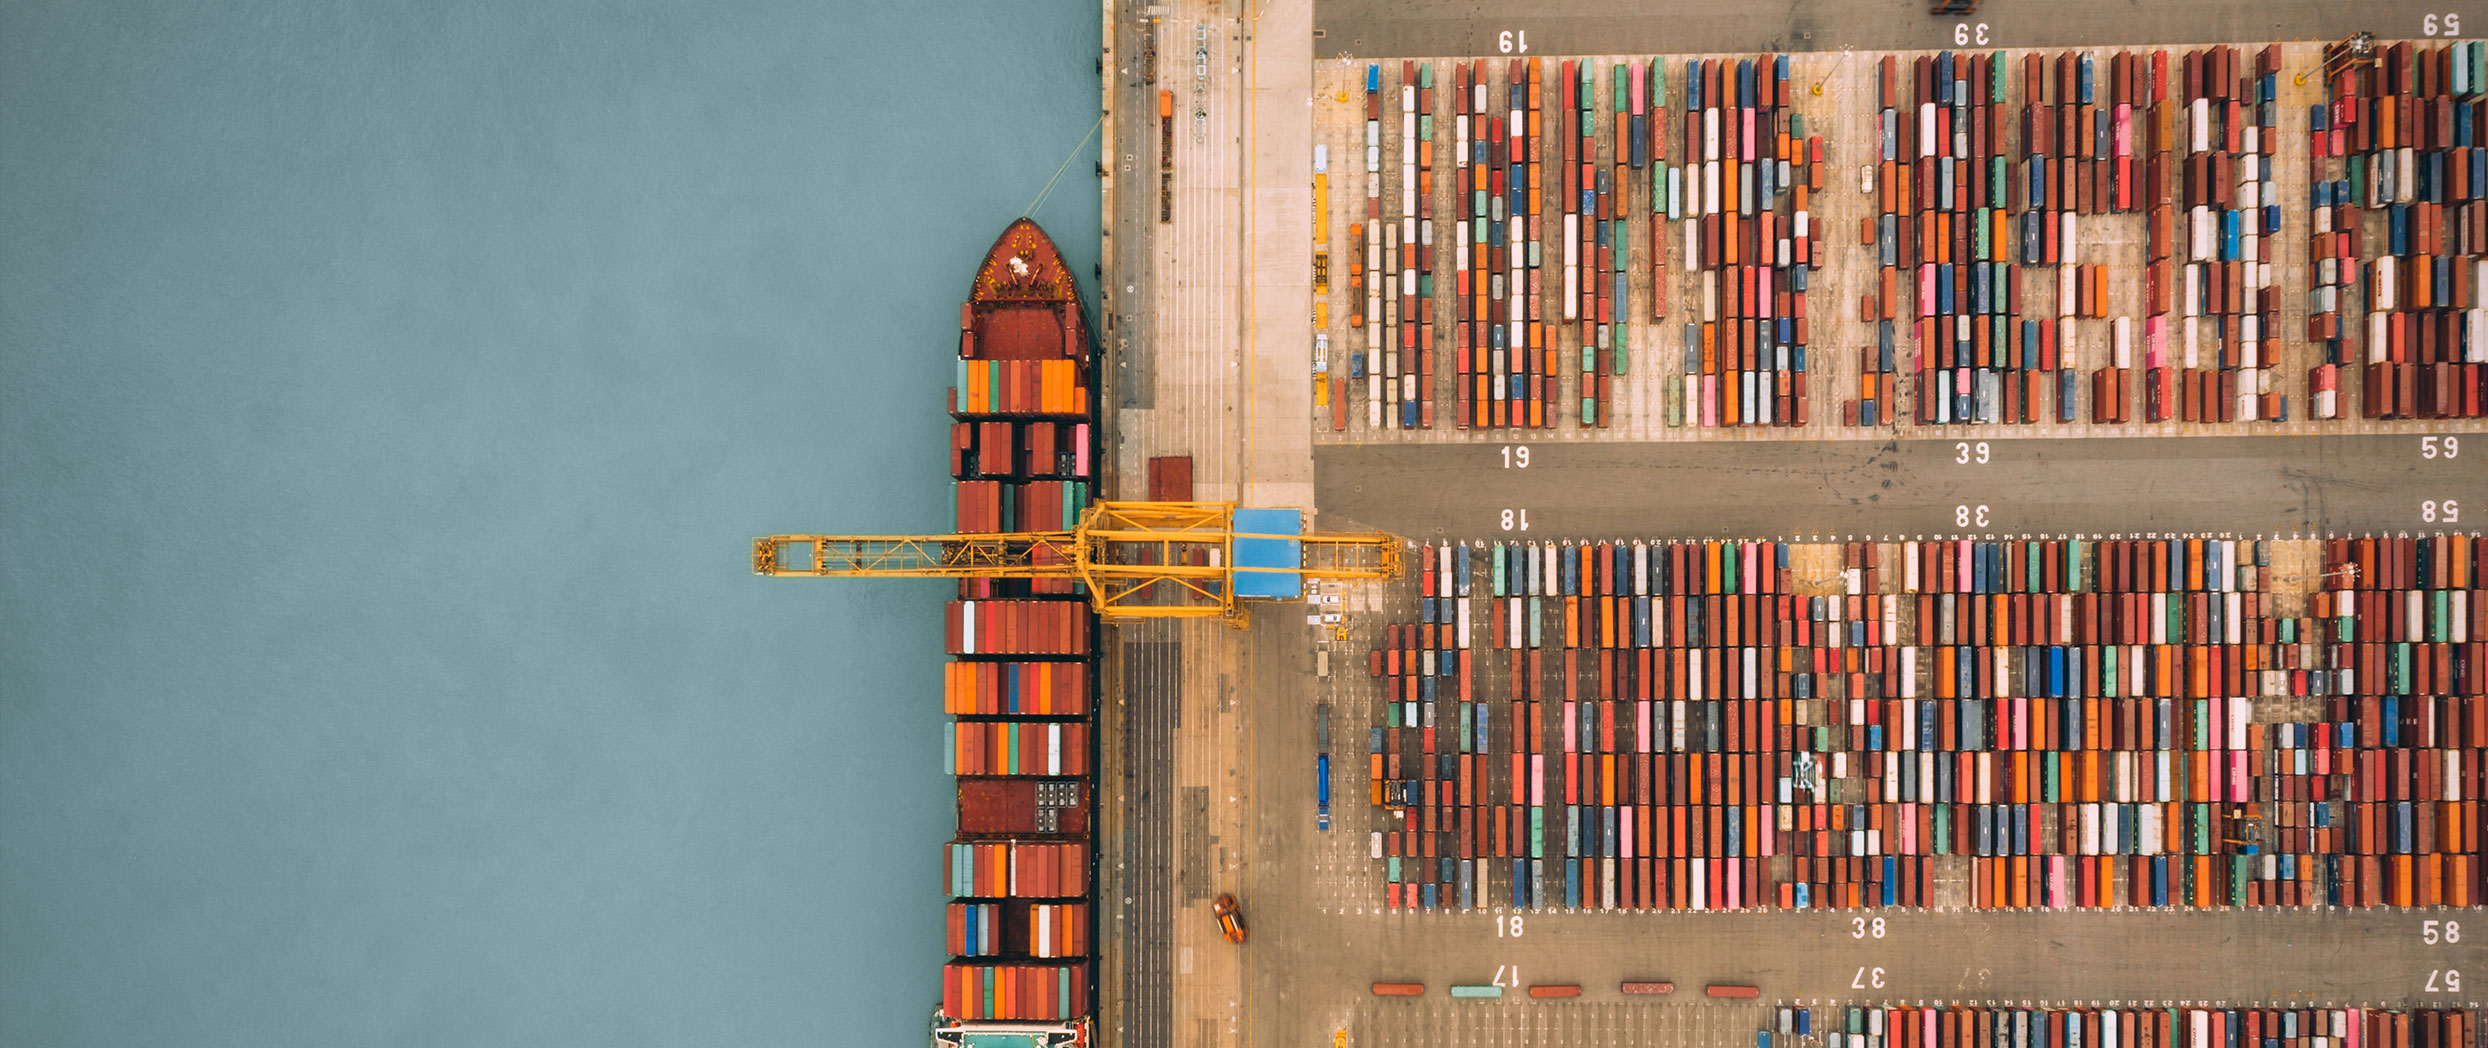 Zero trust to counter threats in the supply chain